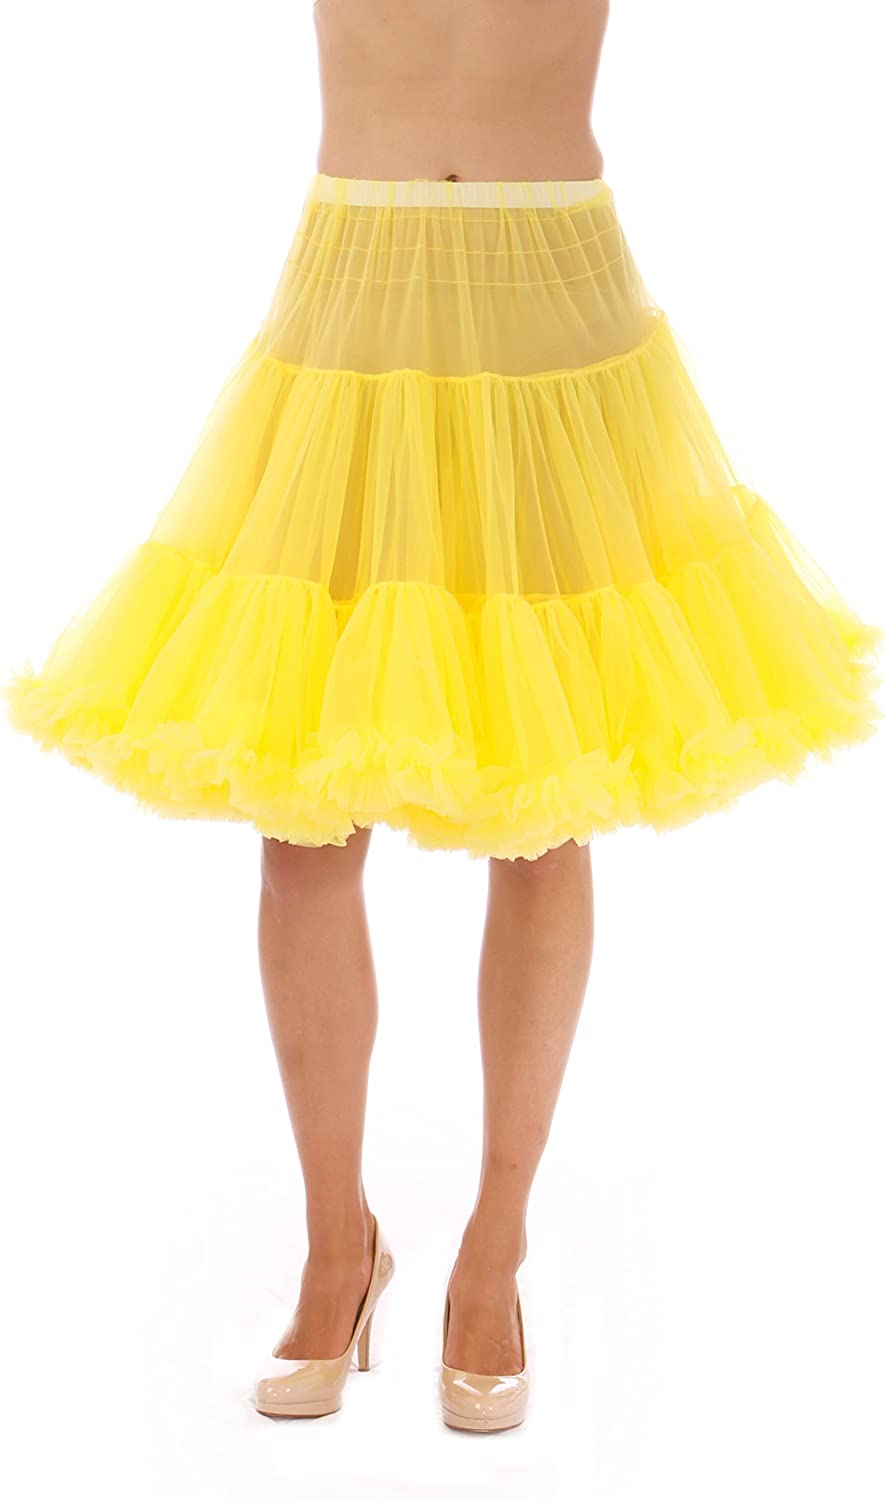 Malco Modes Luxury Vintage KneeLength Petticoat for Rockabilly 50s Lolita Dress